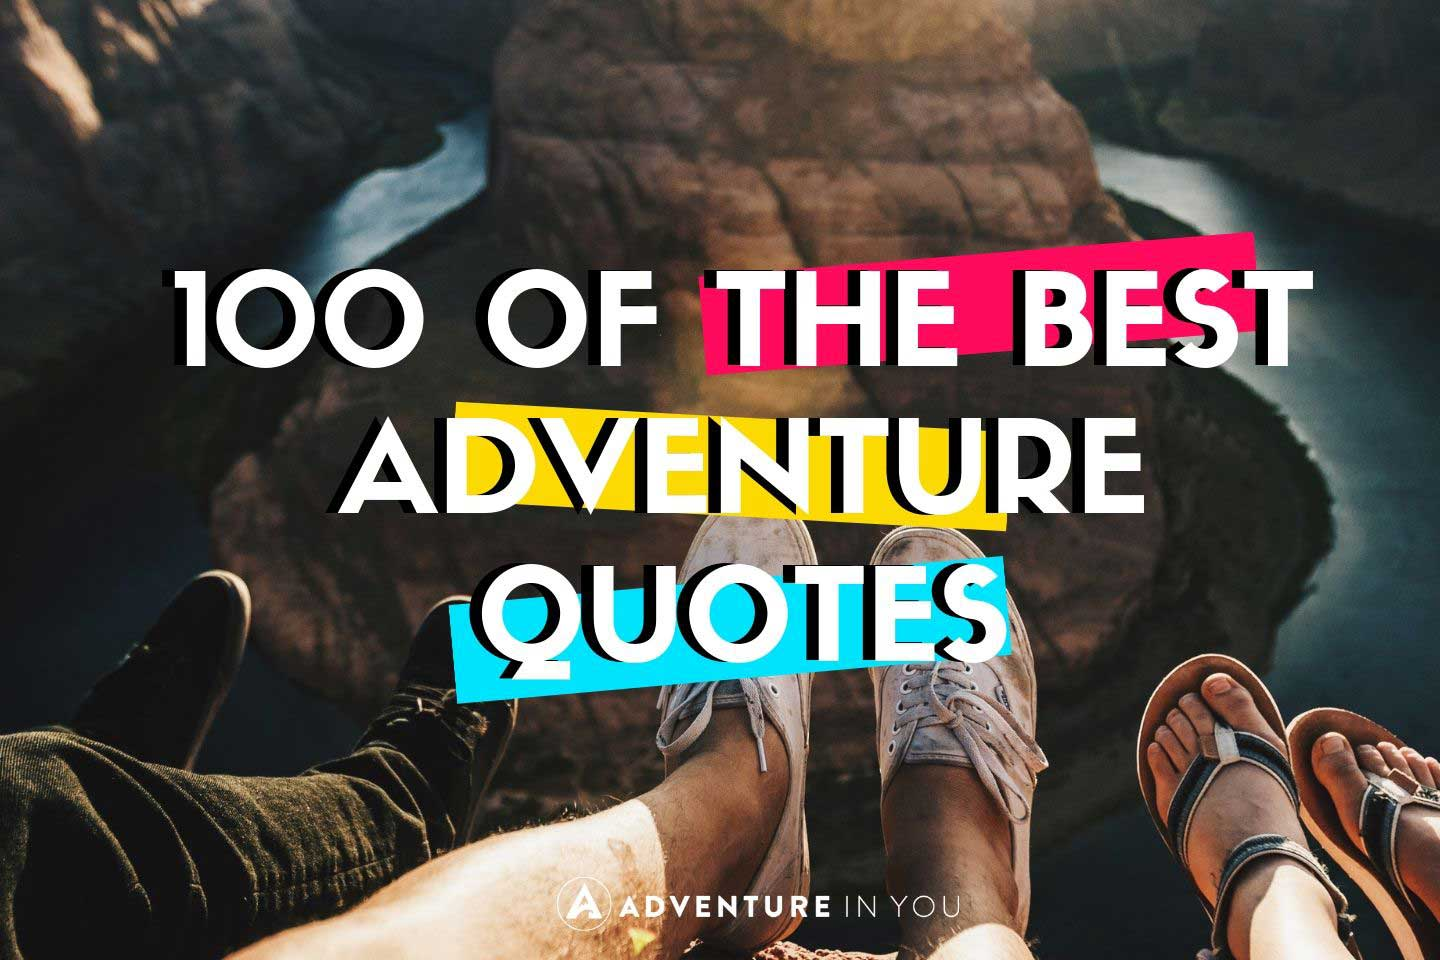 60 Best Adventure Quotes And Sayings: Adventure Quotes: 100 Of The BEST Quotes [+FREE QUOTES BOOK]